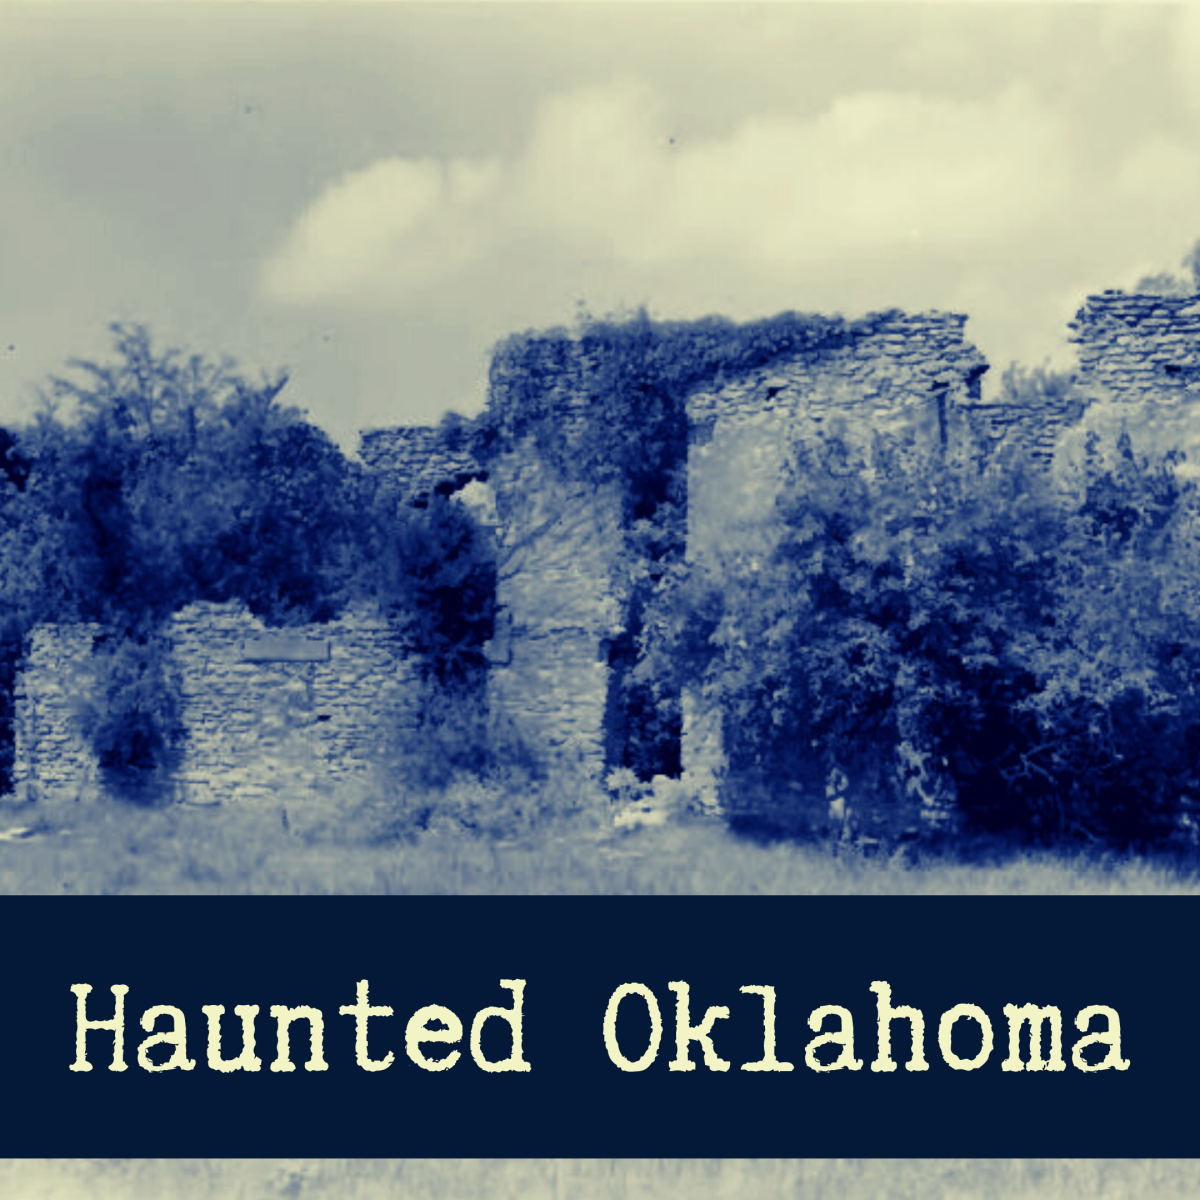 Explore some of Oklahoma's most haunted places, including the Fort Washita barracks pictured above.